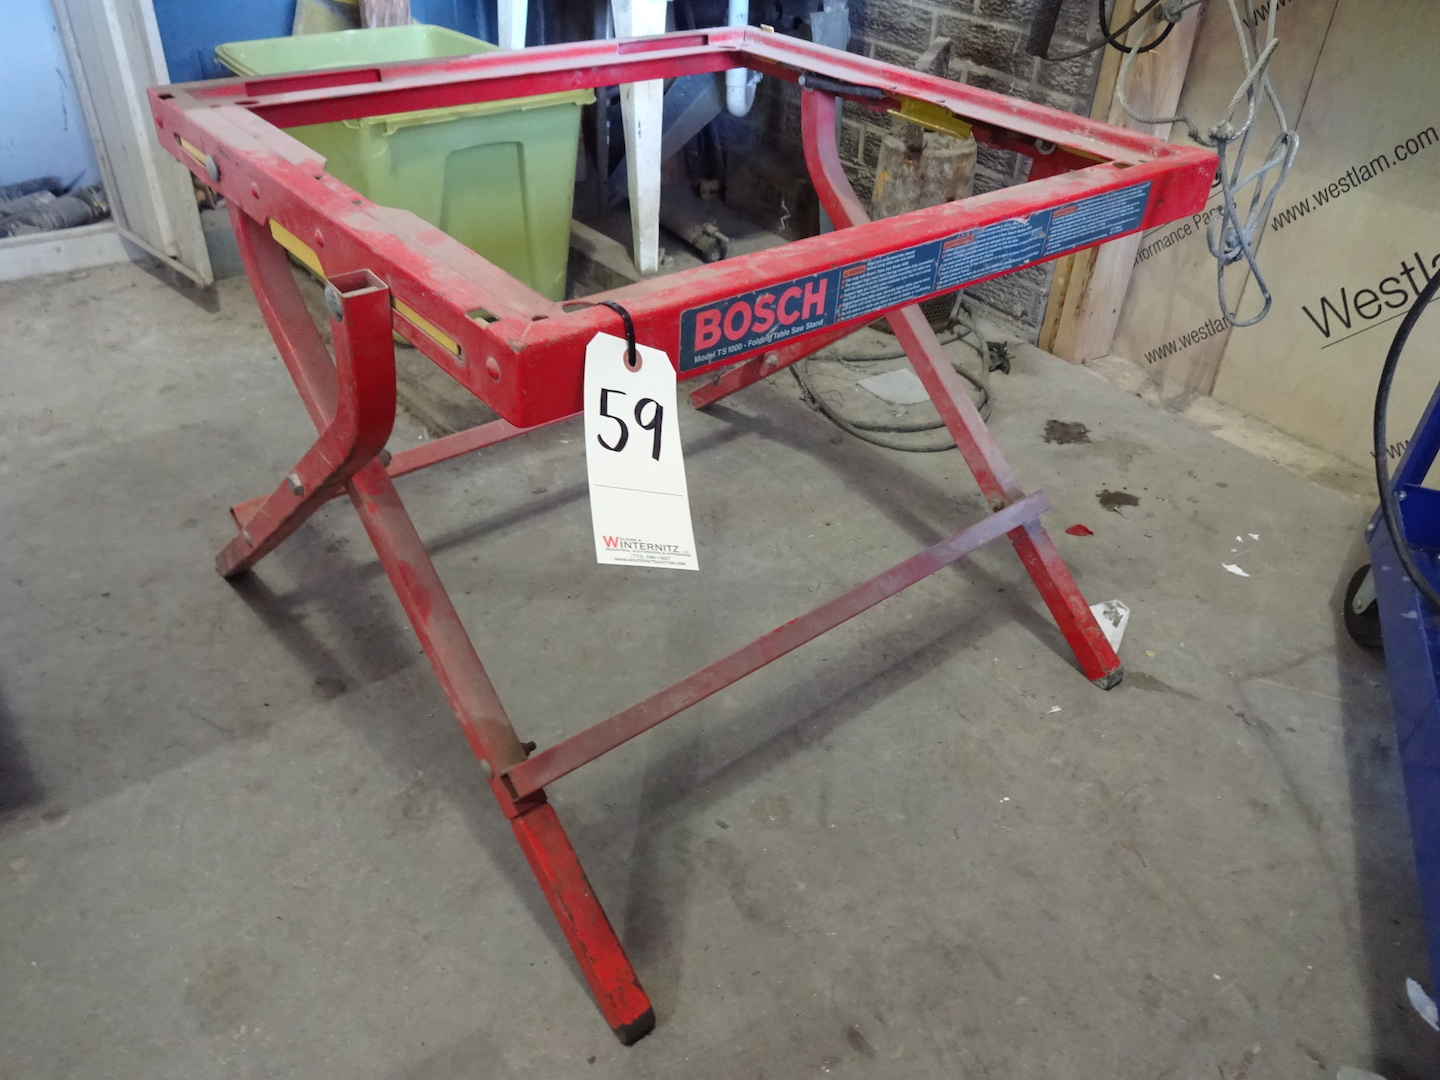 Lot 59 - BOSCH MODEL TS1000 FOLDING TABLE SAW STAND